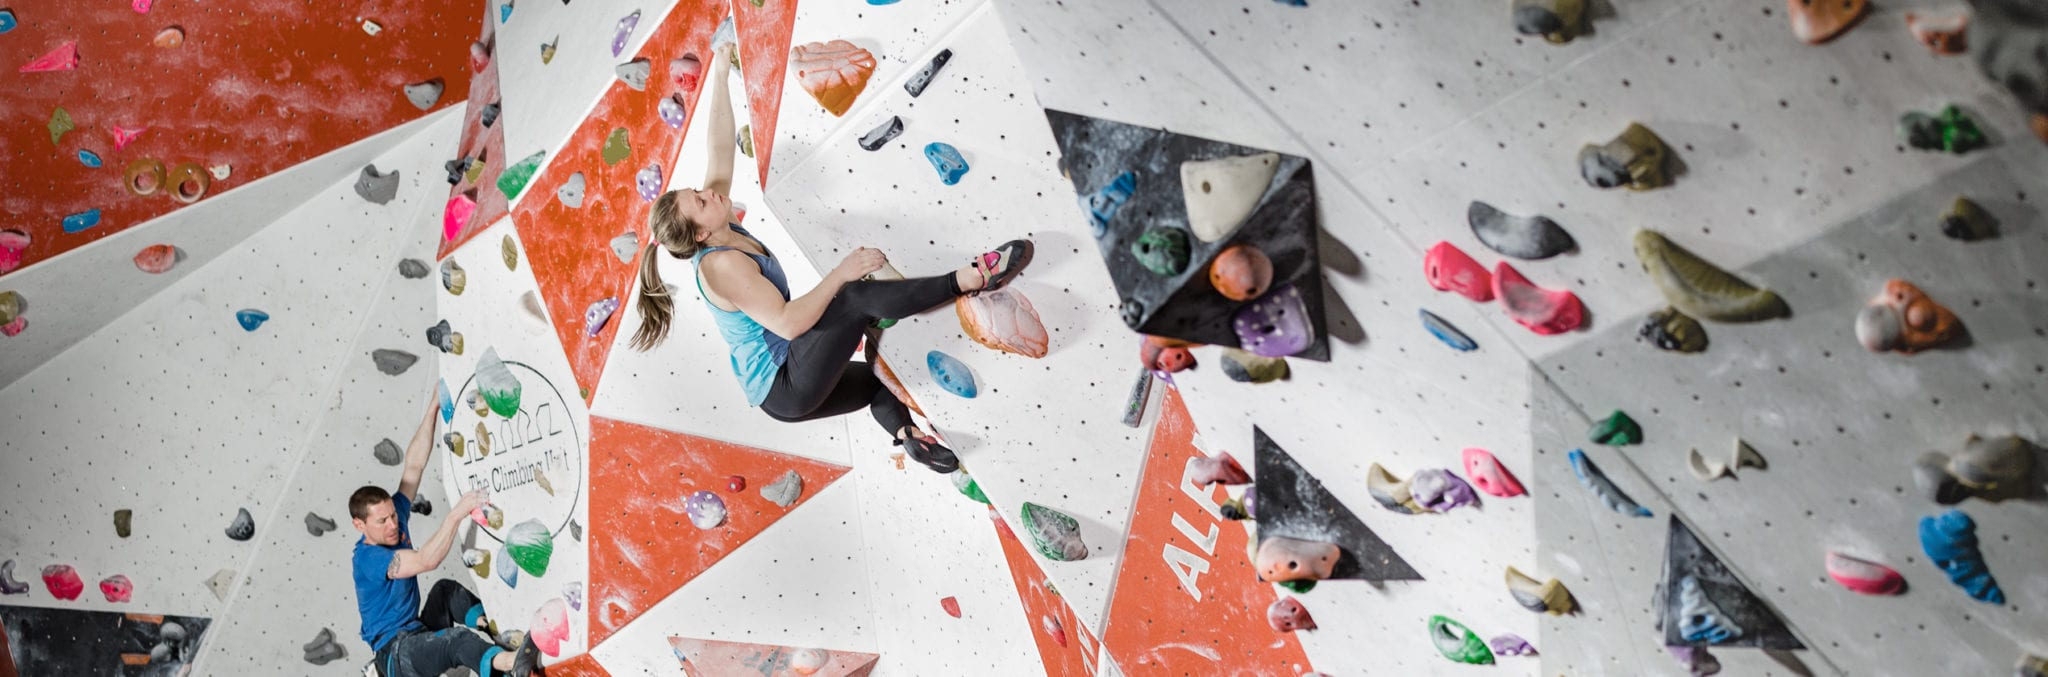 Two climbers climbing at the climbing wall